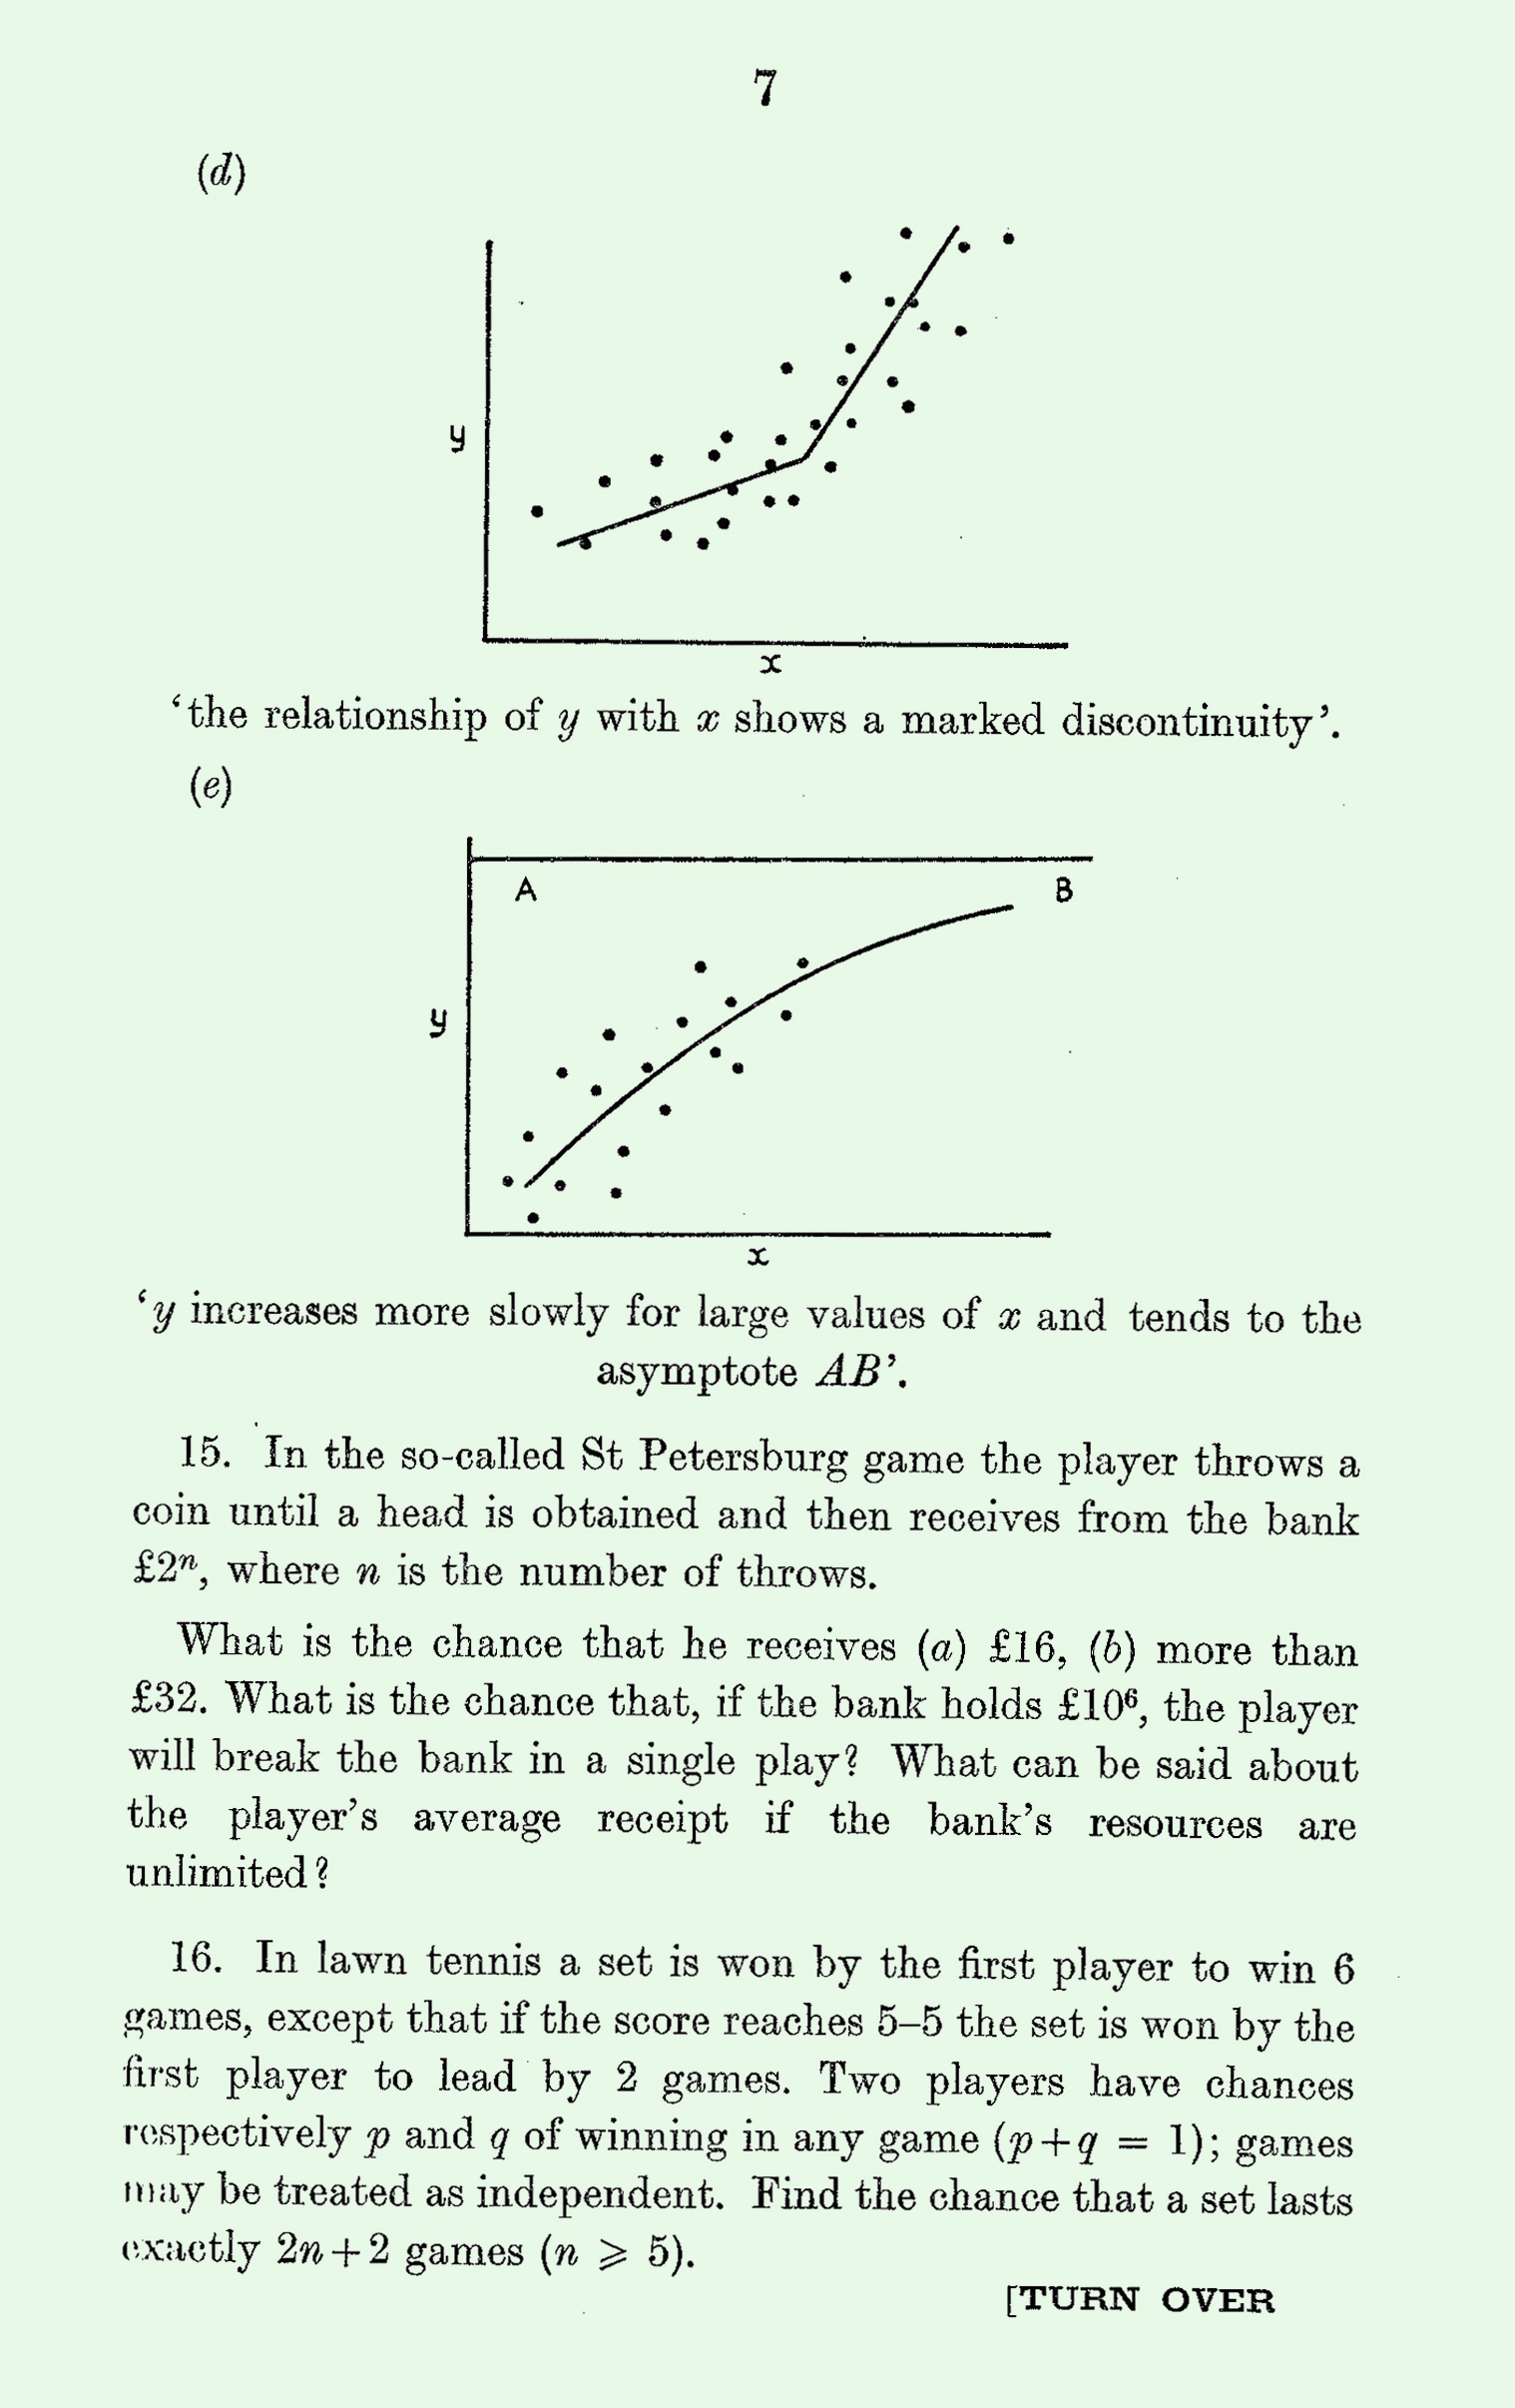 1963 Applied Mathematics A Level & S Level Paper I page 7